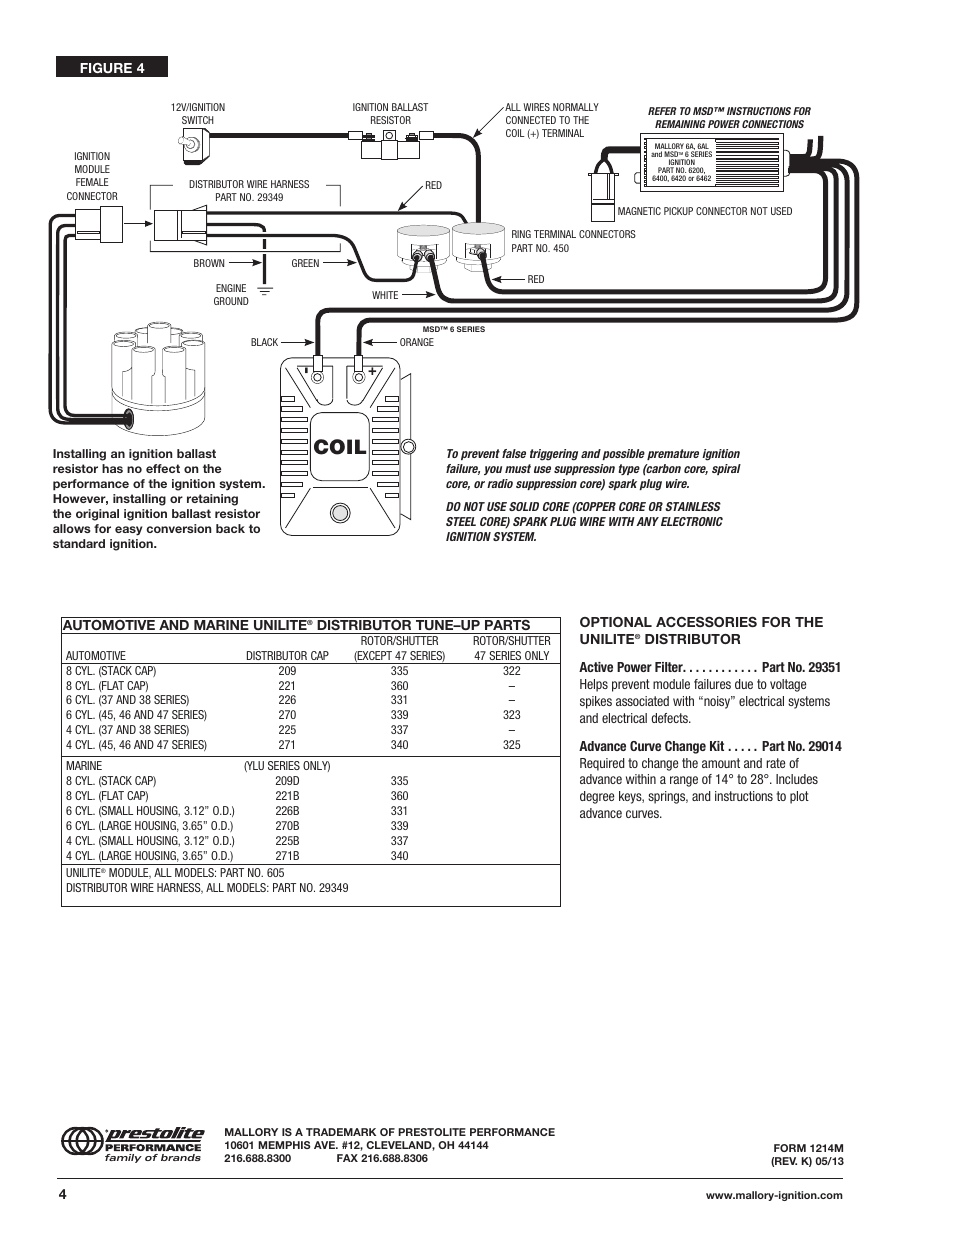 mallory ignition mallory unilite distributor 37_38_45_47 page4?resize\\\\\\\\\\\\\\\\\\\\\\\=665%2C861 mallory ignition hyfire wiring diagram wiring diagrams mallory hyfire 6a wiring diagram at bakdesigns.co